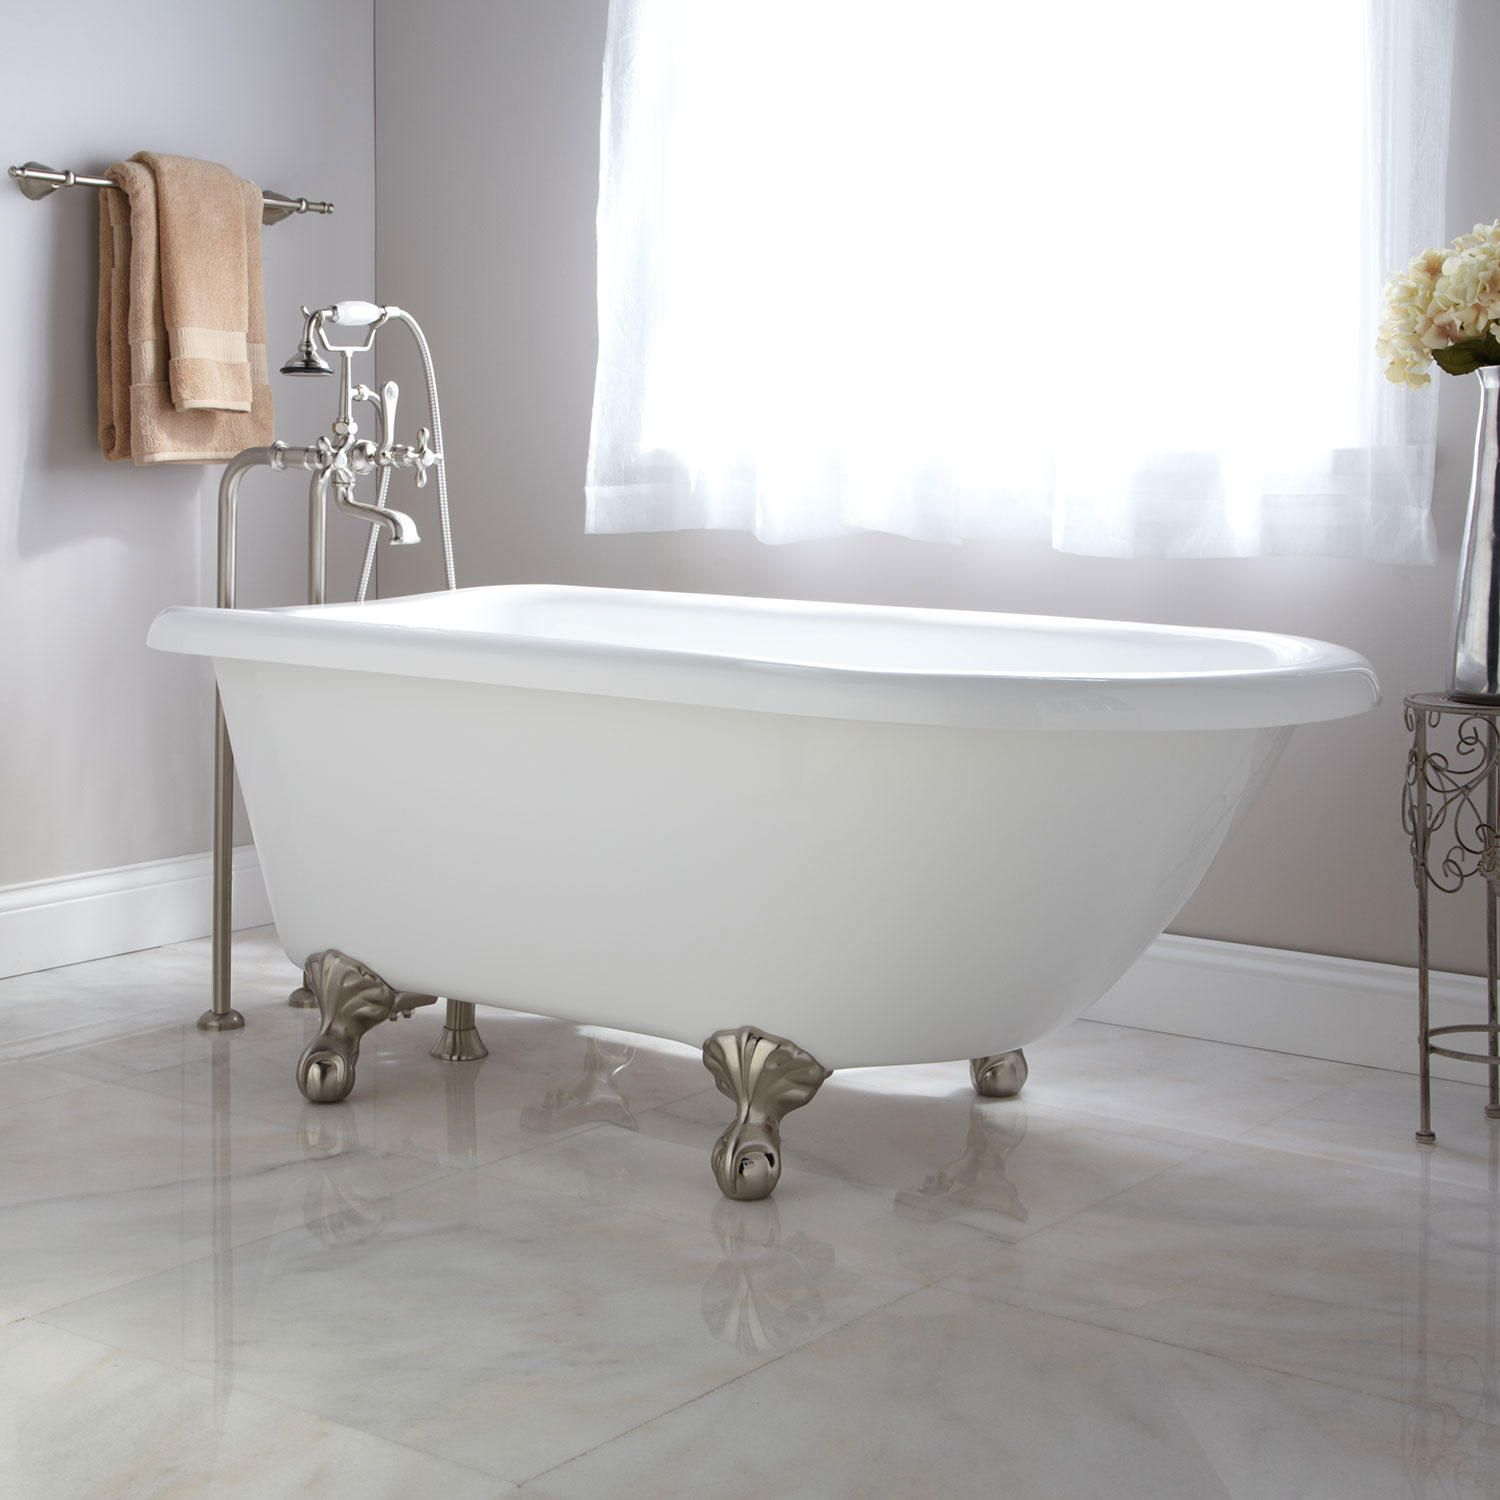 Clawfoot Tubs to Fit Your Space (And Budget)